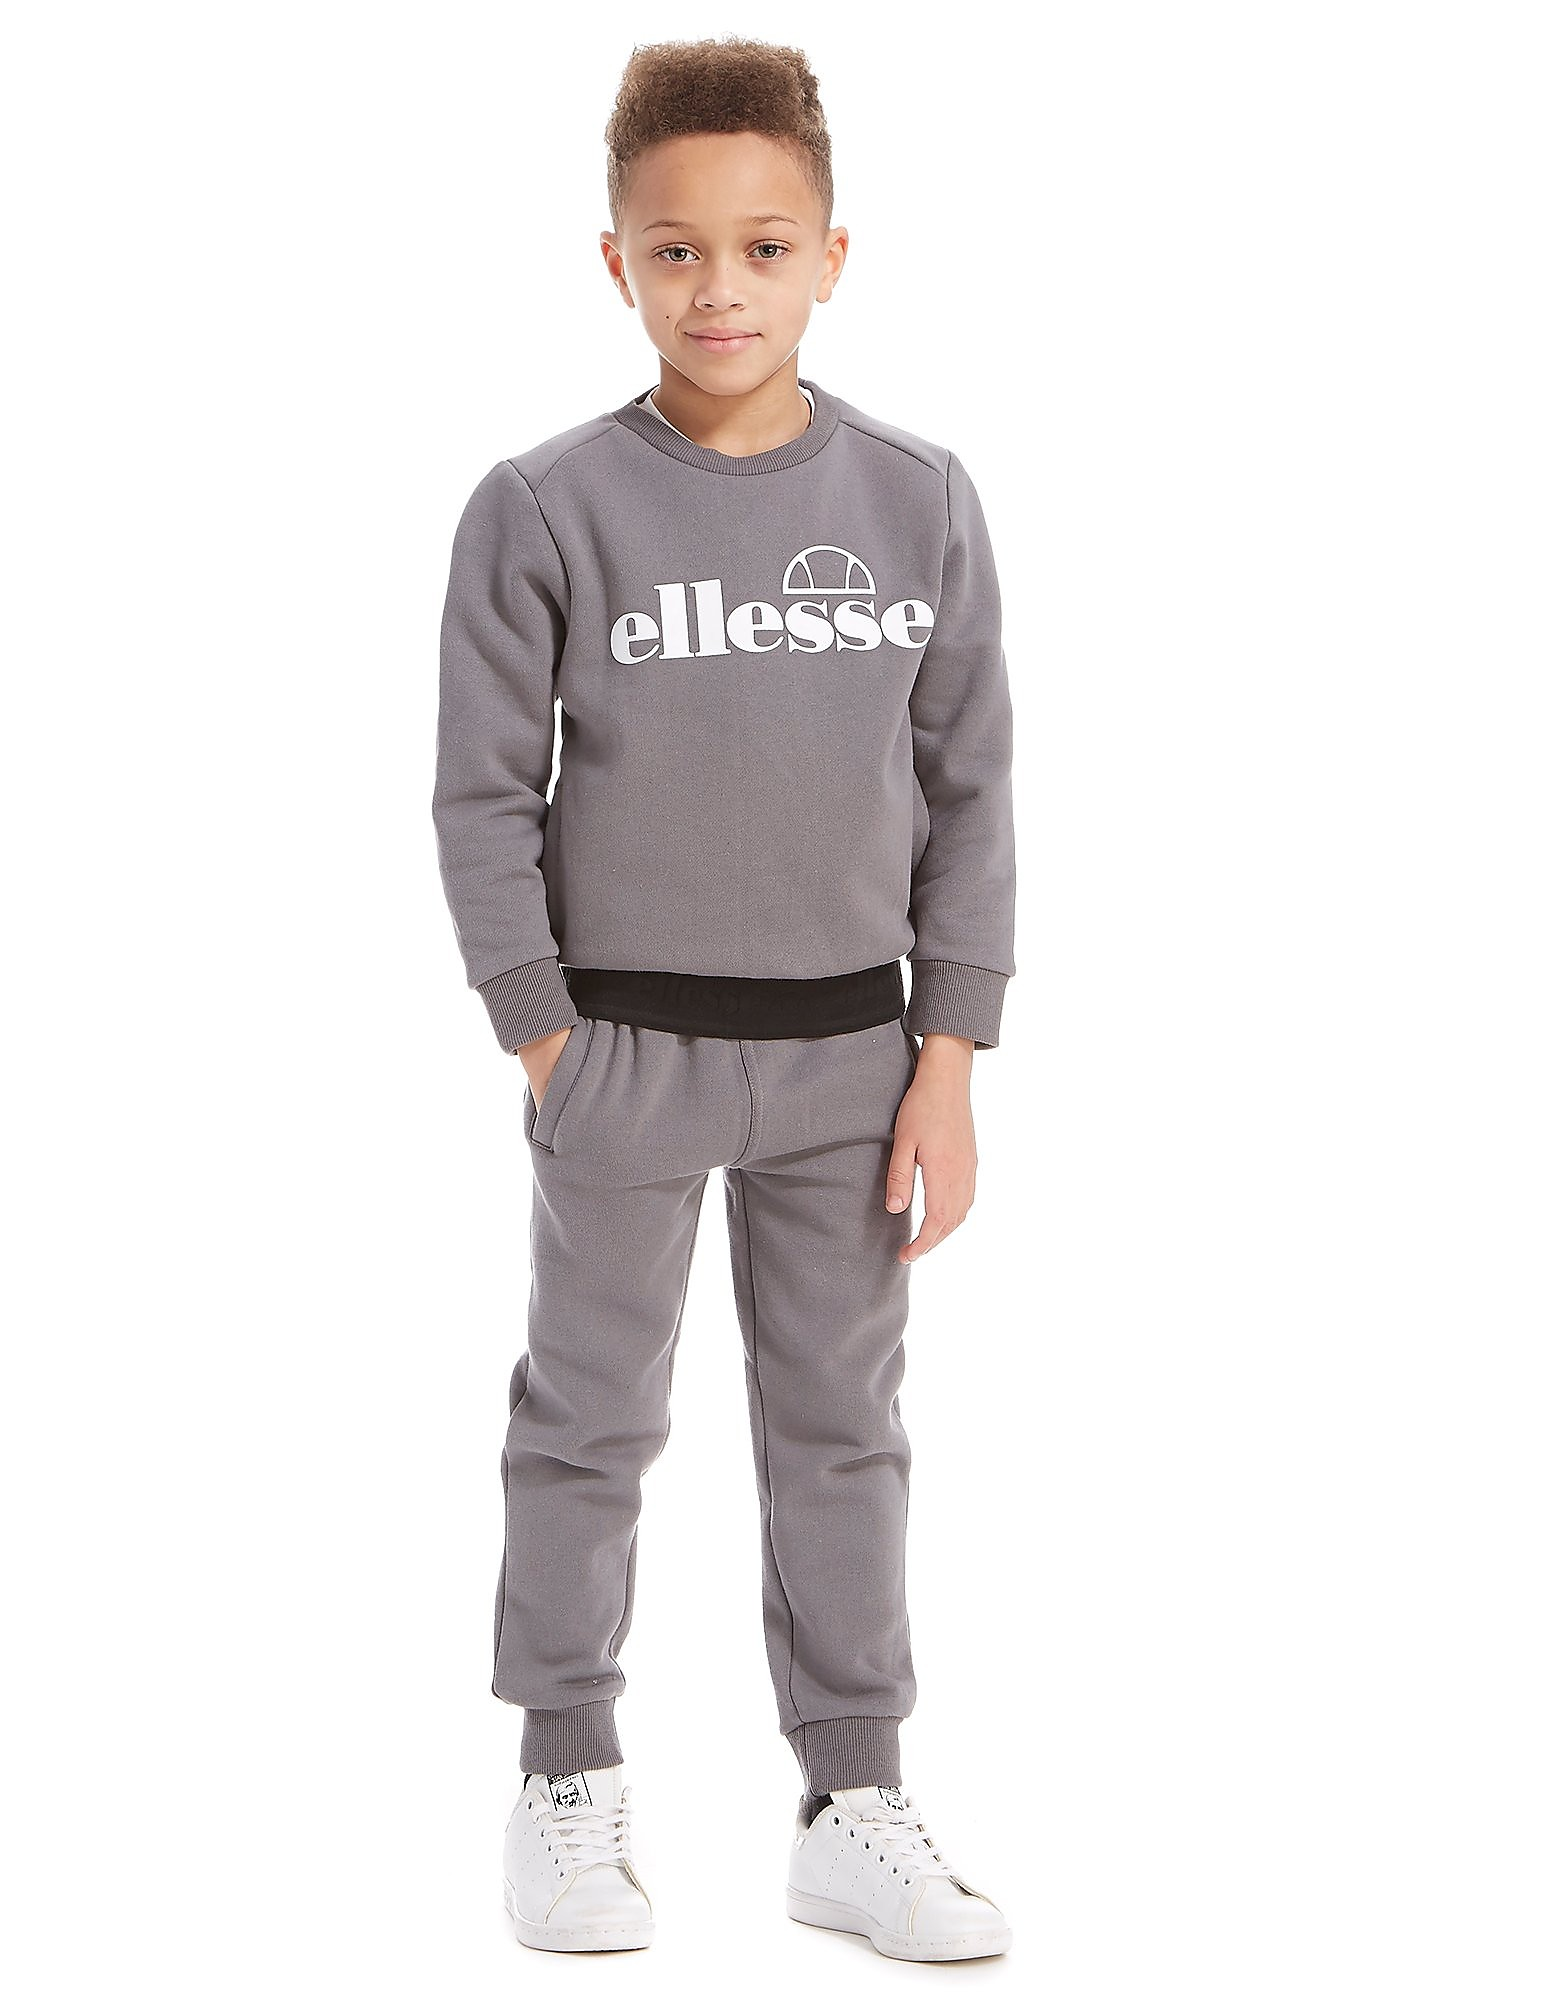 Ellesse Universo Crew Suit Children